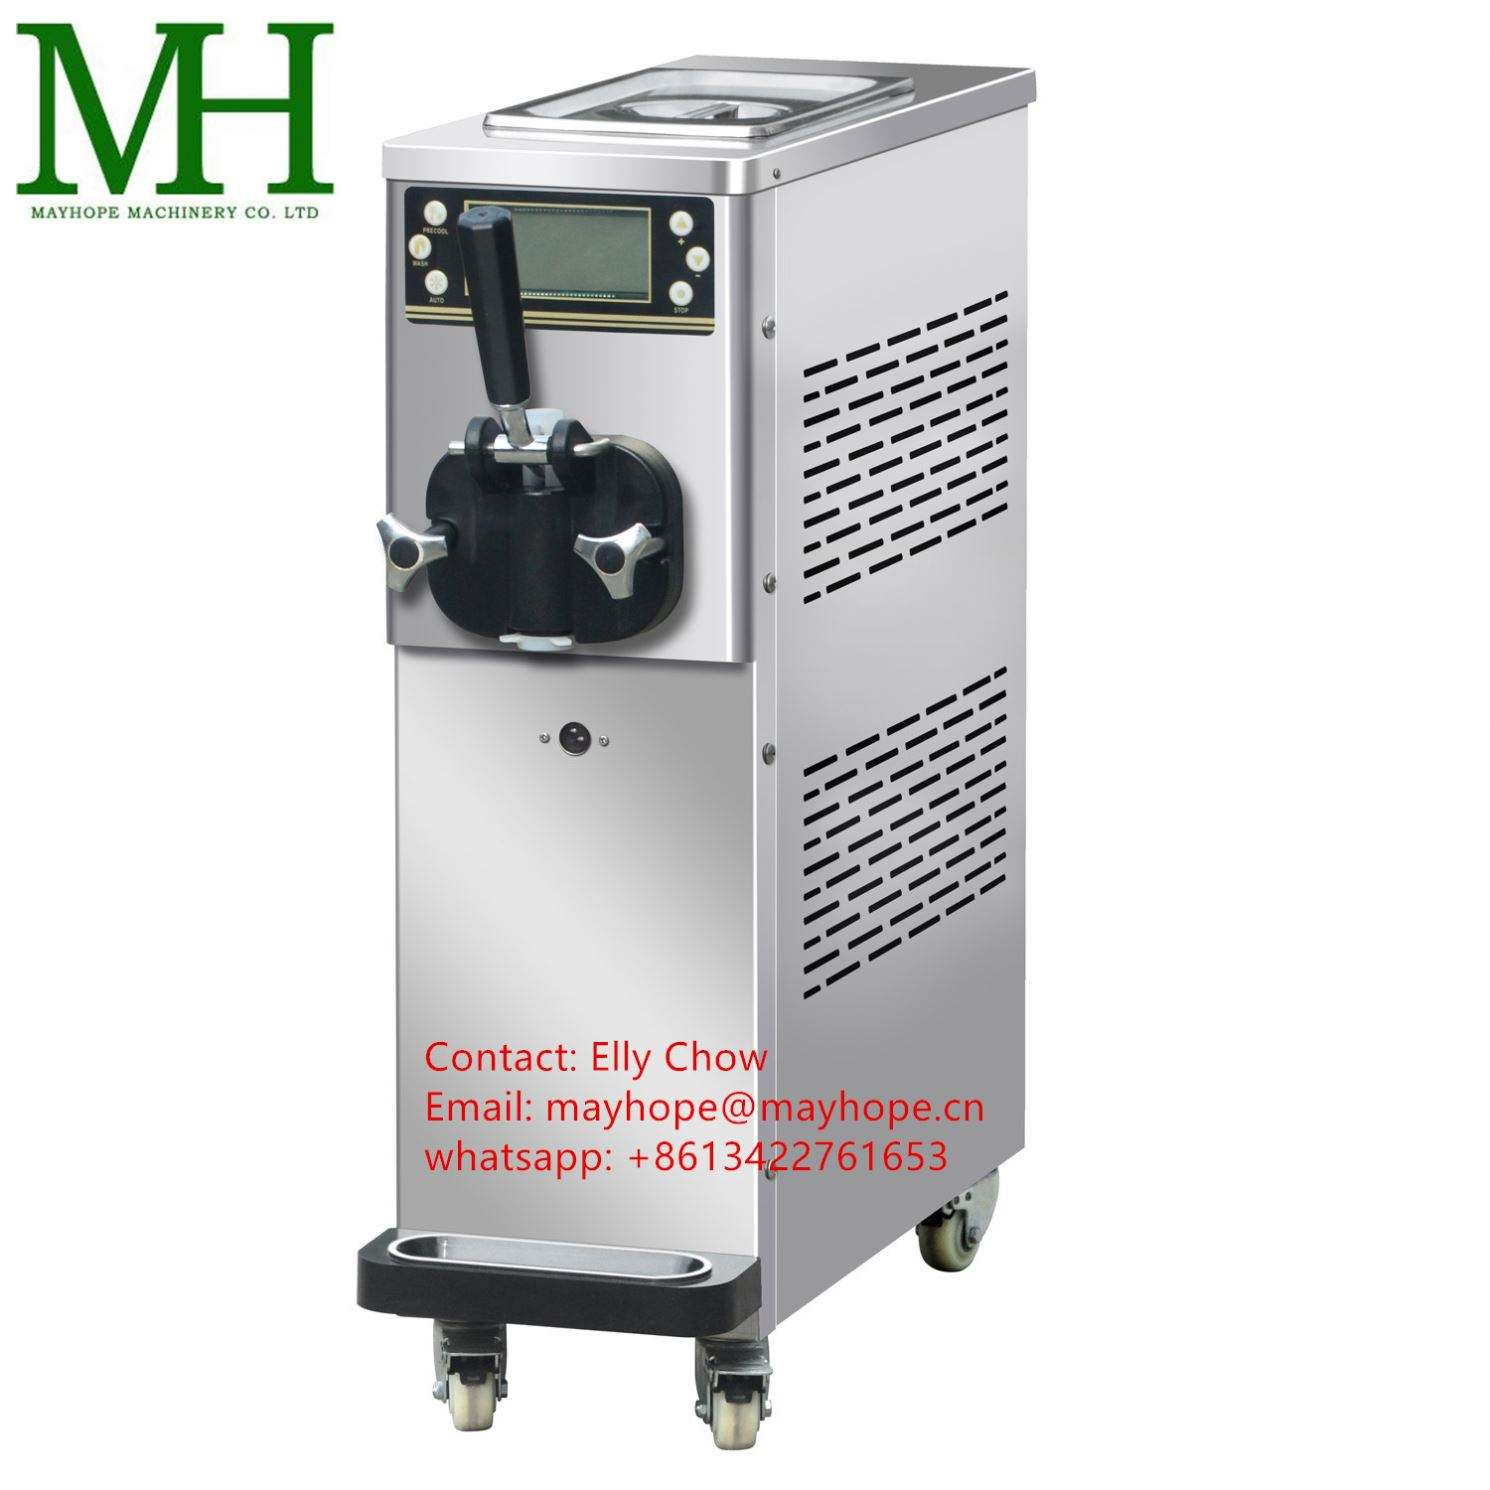 Hot selling 2+1 mixed flavour soft ice cream making machine BQL-818T